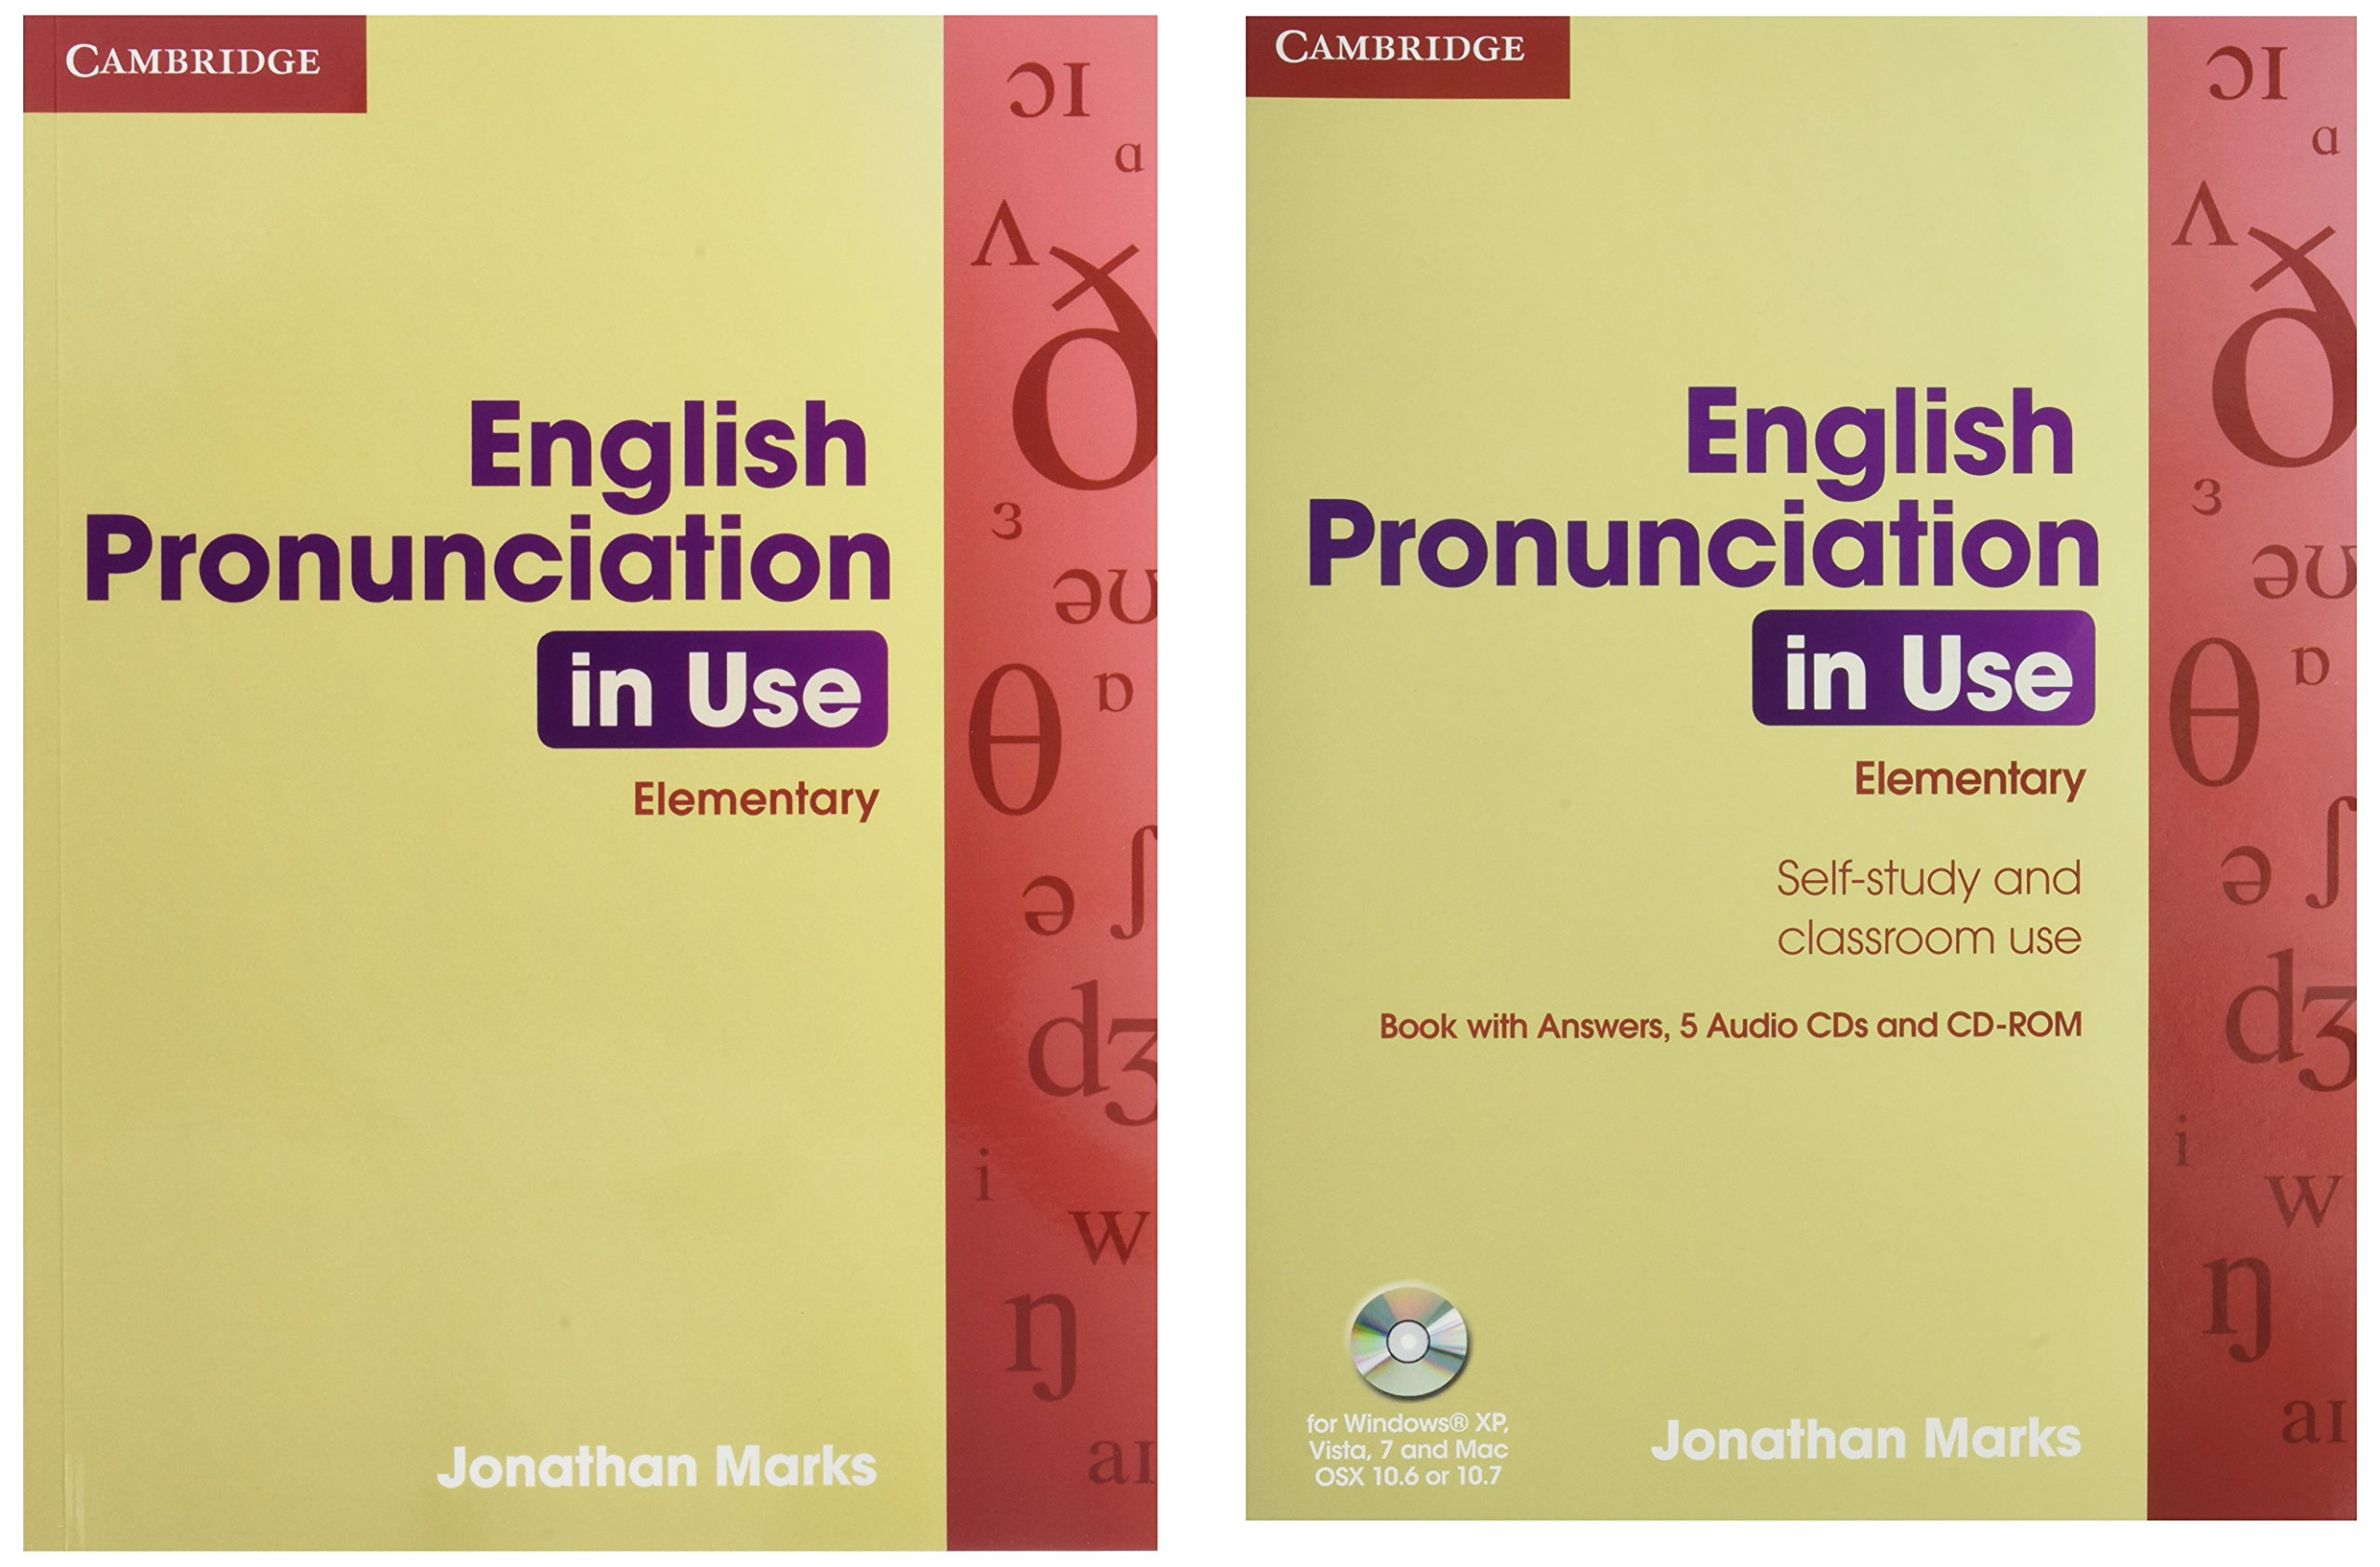 English Pronunciation In Use Elementary Book With Answers 5 Audio Cds And Cd Rom Amazon Co Uk Donna Sylvie Marks Jonathan 9780521693738 Books